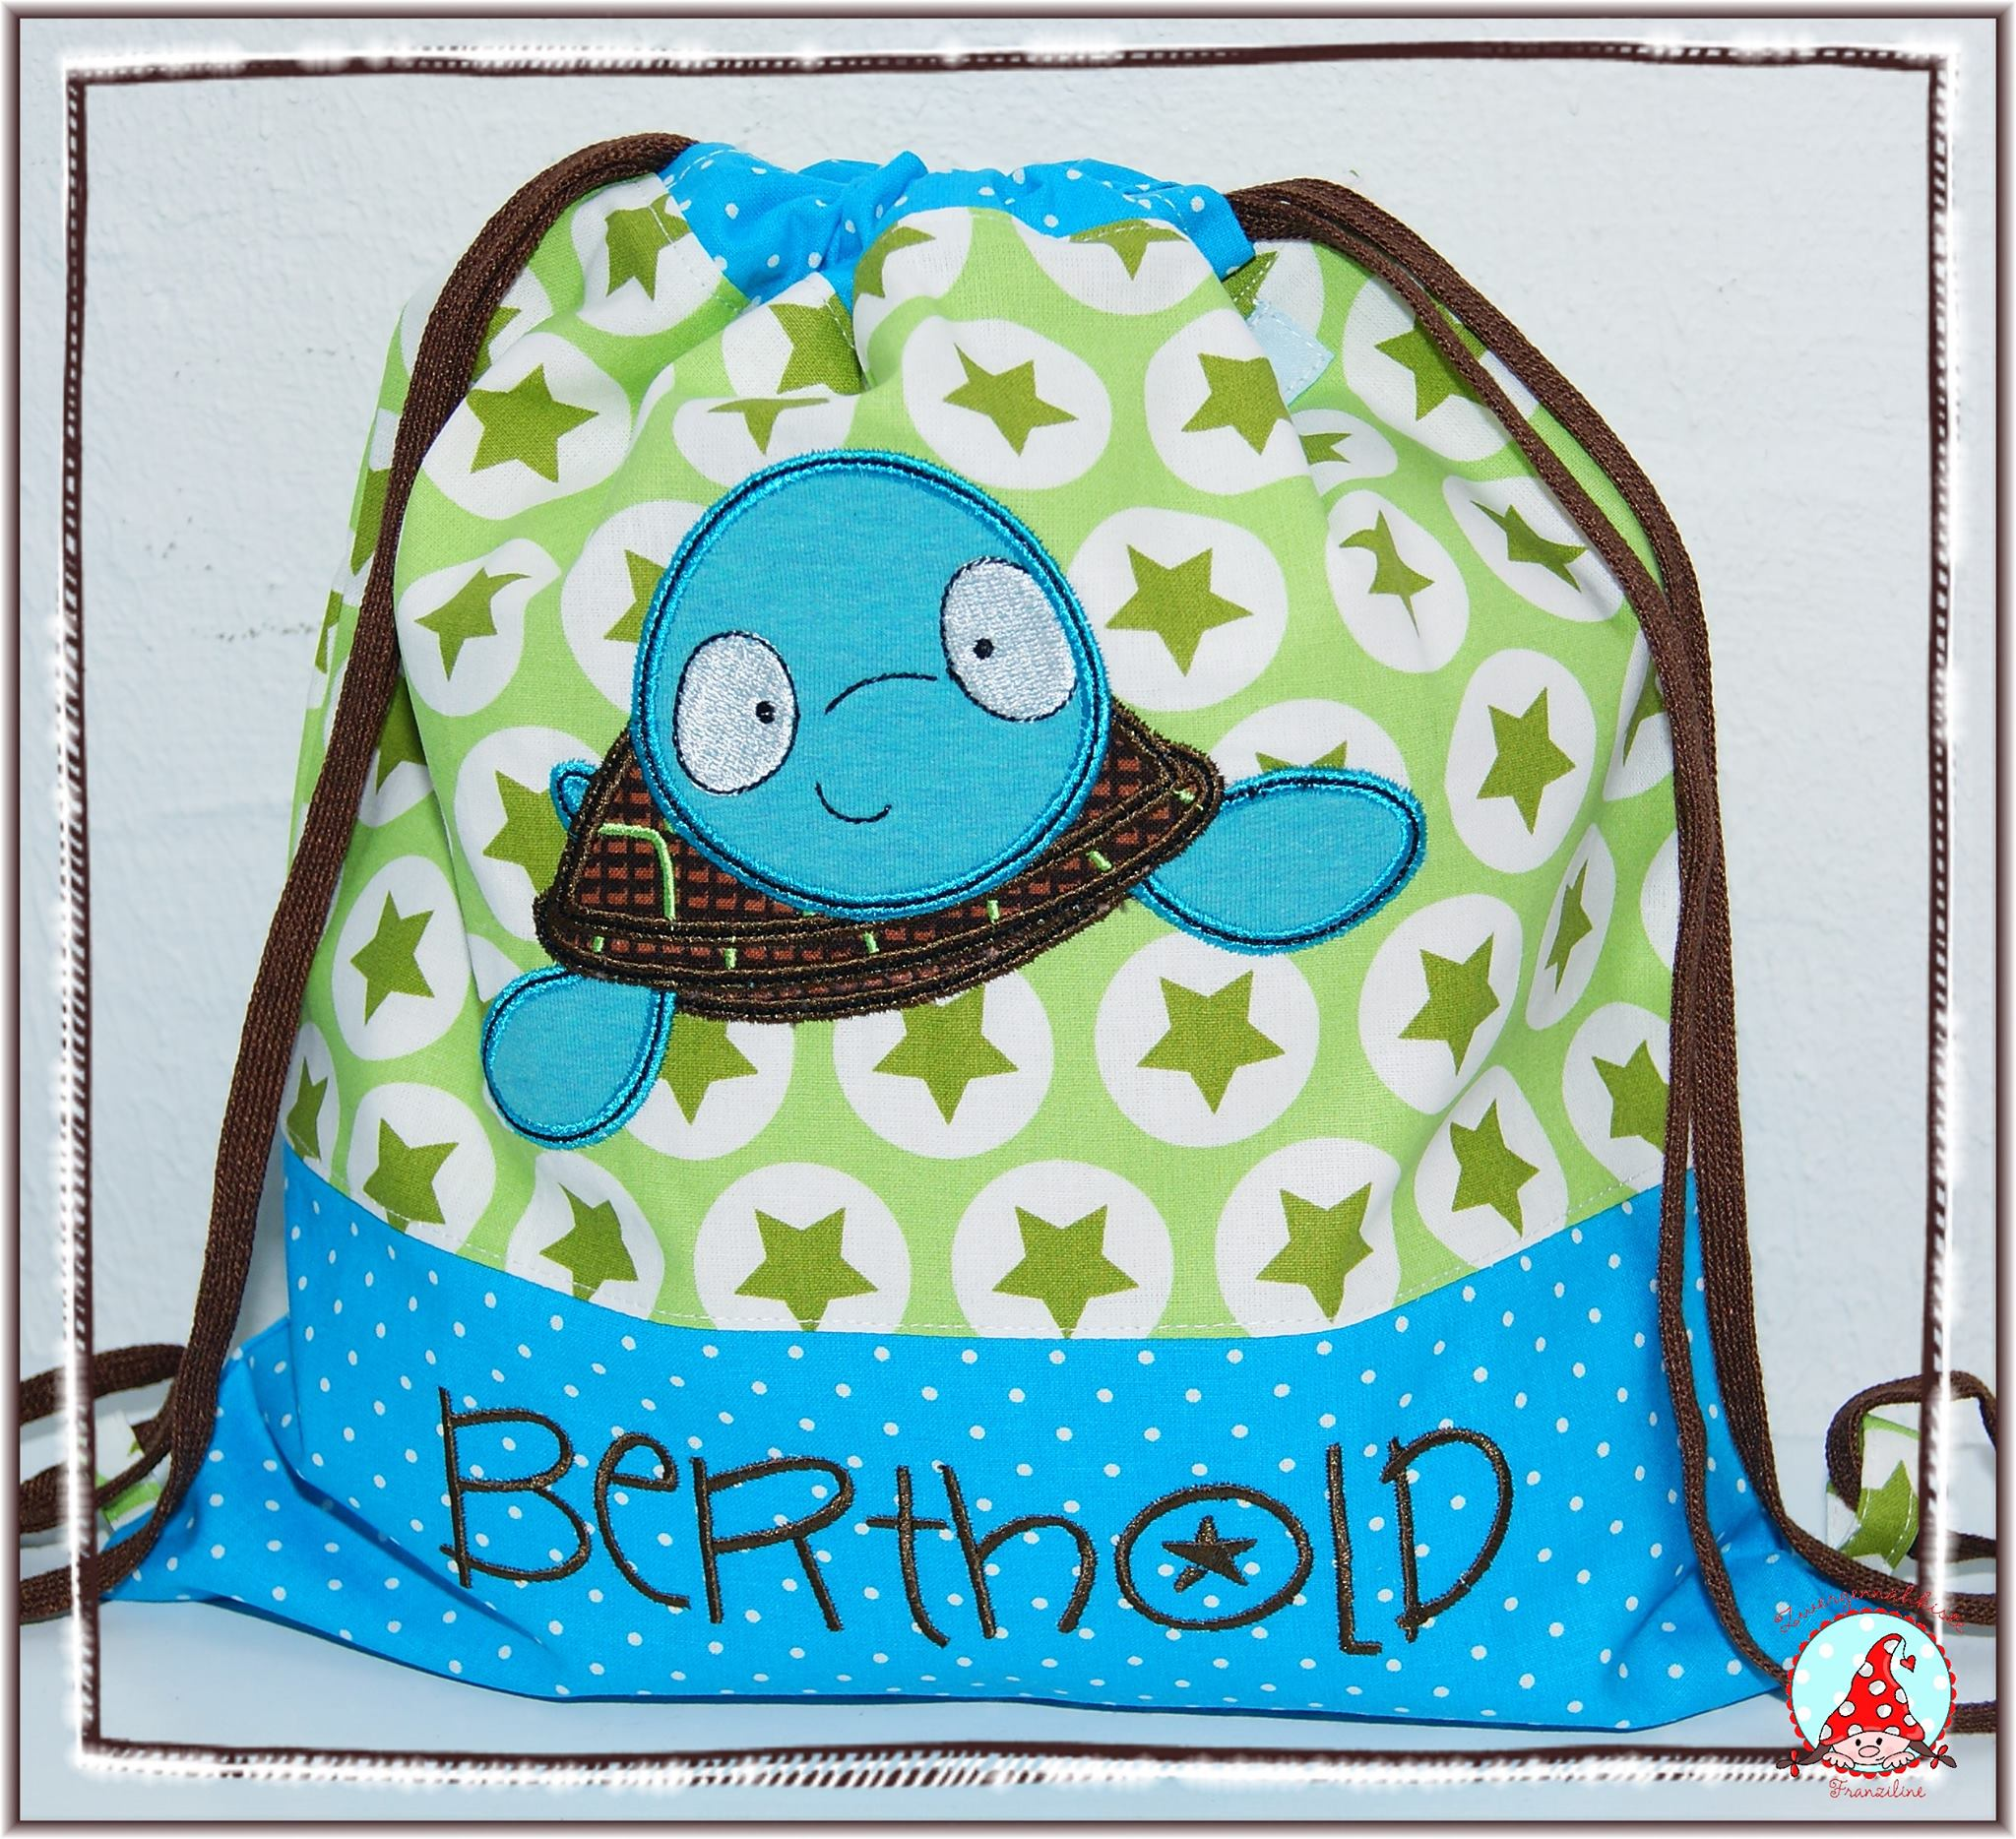 Fran Sea Creatures Too Applique Bag Oct 16